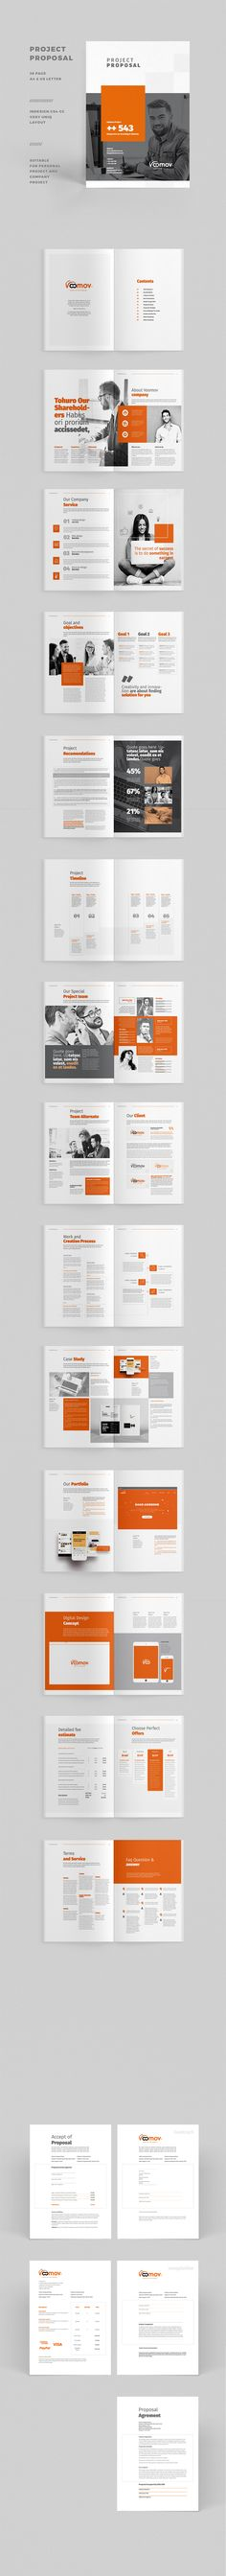 brand, brief, brochure design, business, business proposal, clean, corporate, creative, design, identity, indesign, indesign templates, informational, Kampretco, light, minimal, modern, professional, report, trend, trendy, us letter, visual